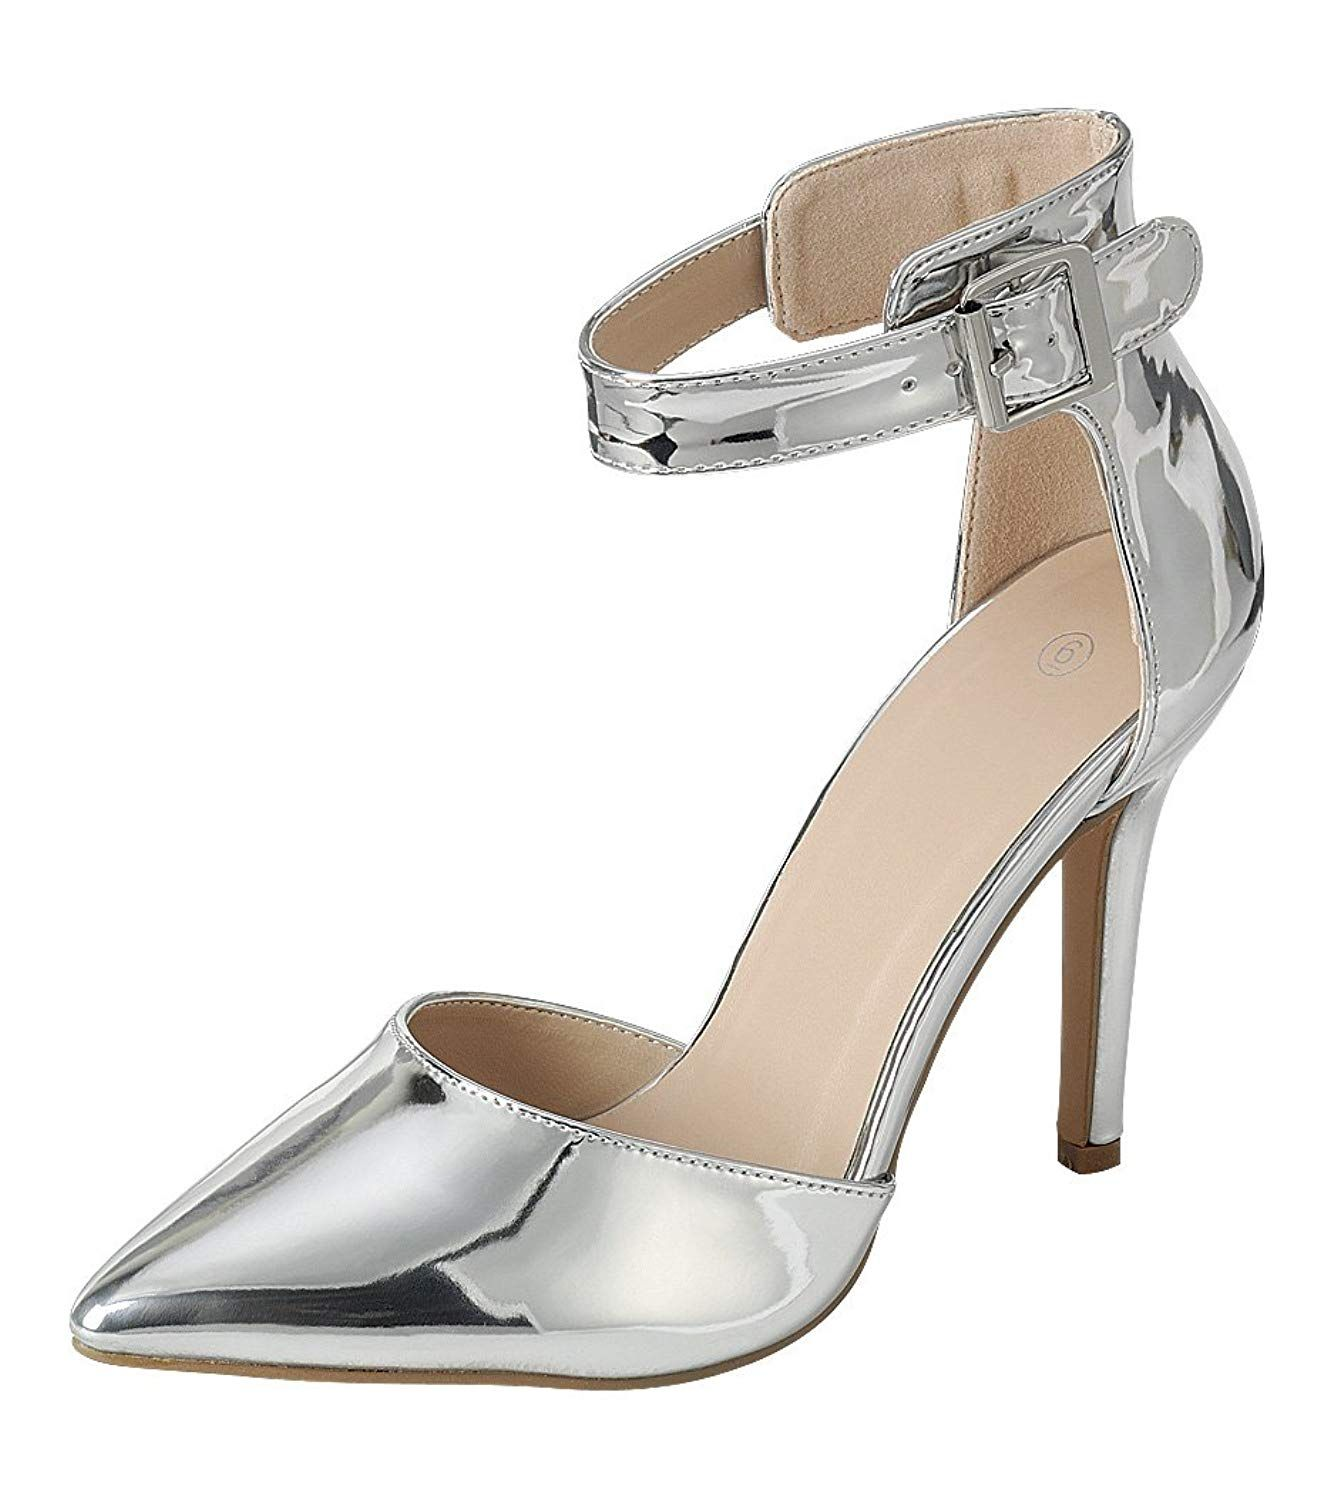 bba8eefce78 Cambridge Select Women s Closed Pointed Toe D Orsay Buckled Ankle Strap  Stiletto High Heel Pump